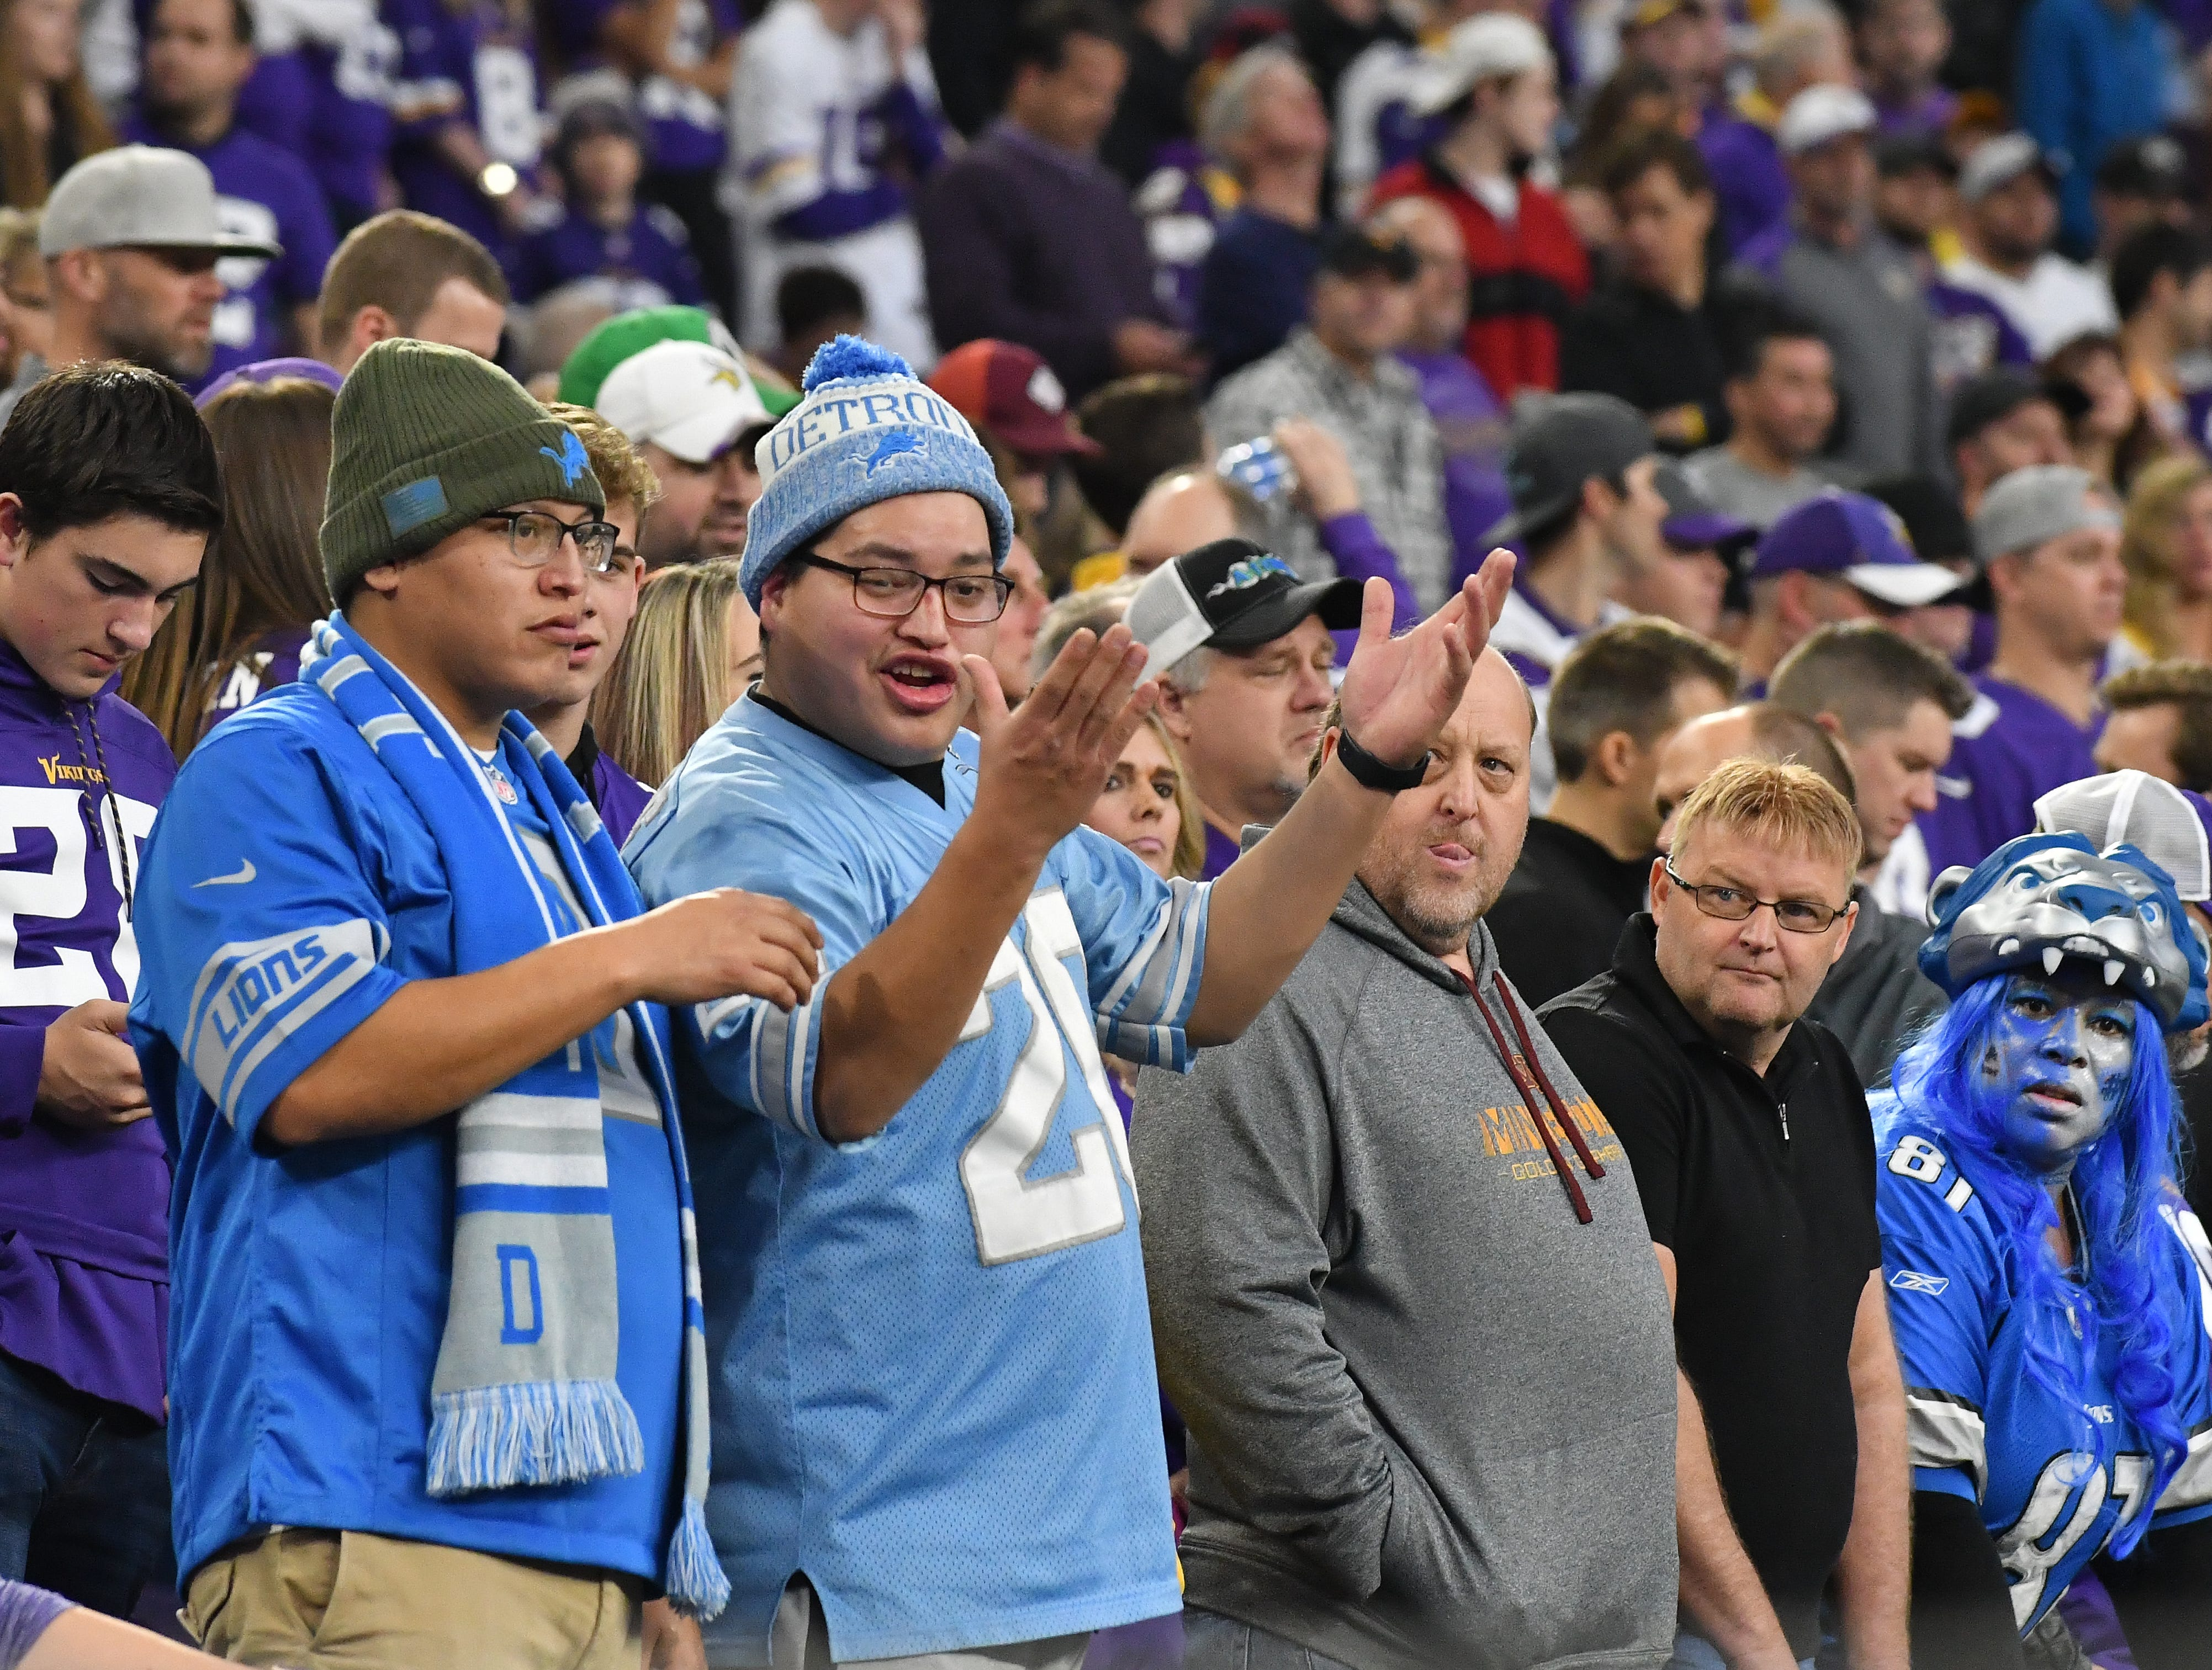 Lions fans throw their hands up late in the fourth quarter of the 24-9 loss to the Vikings.